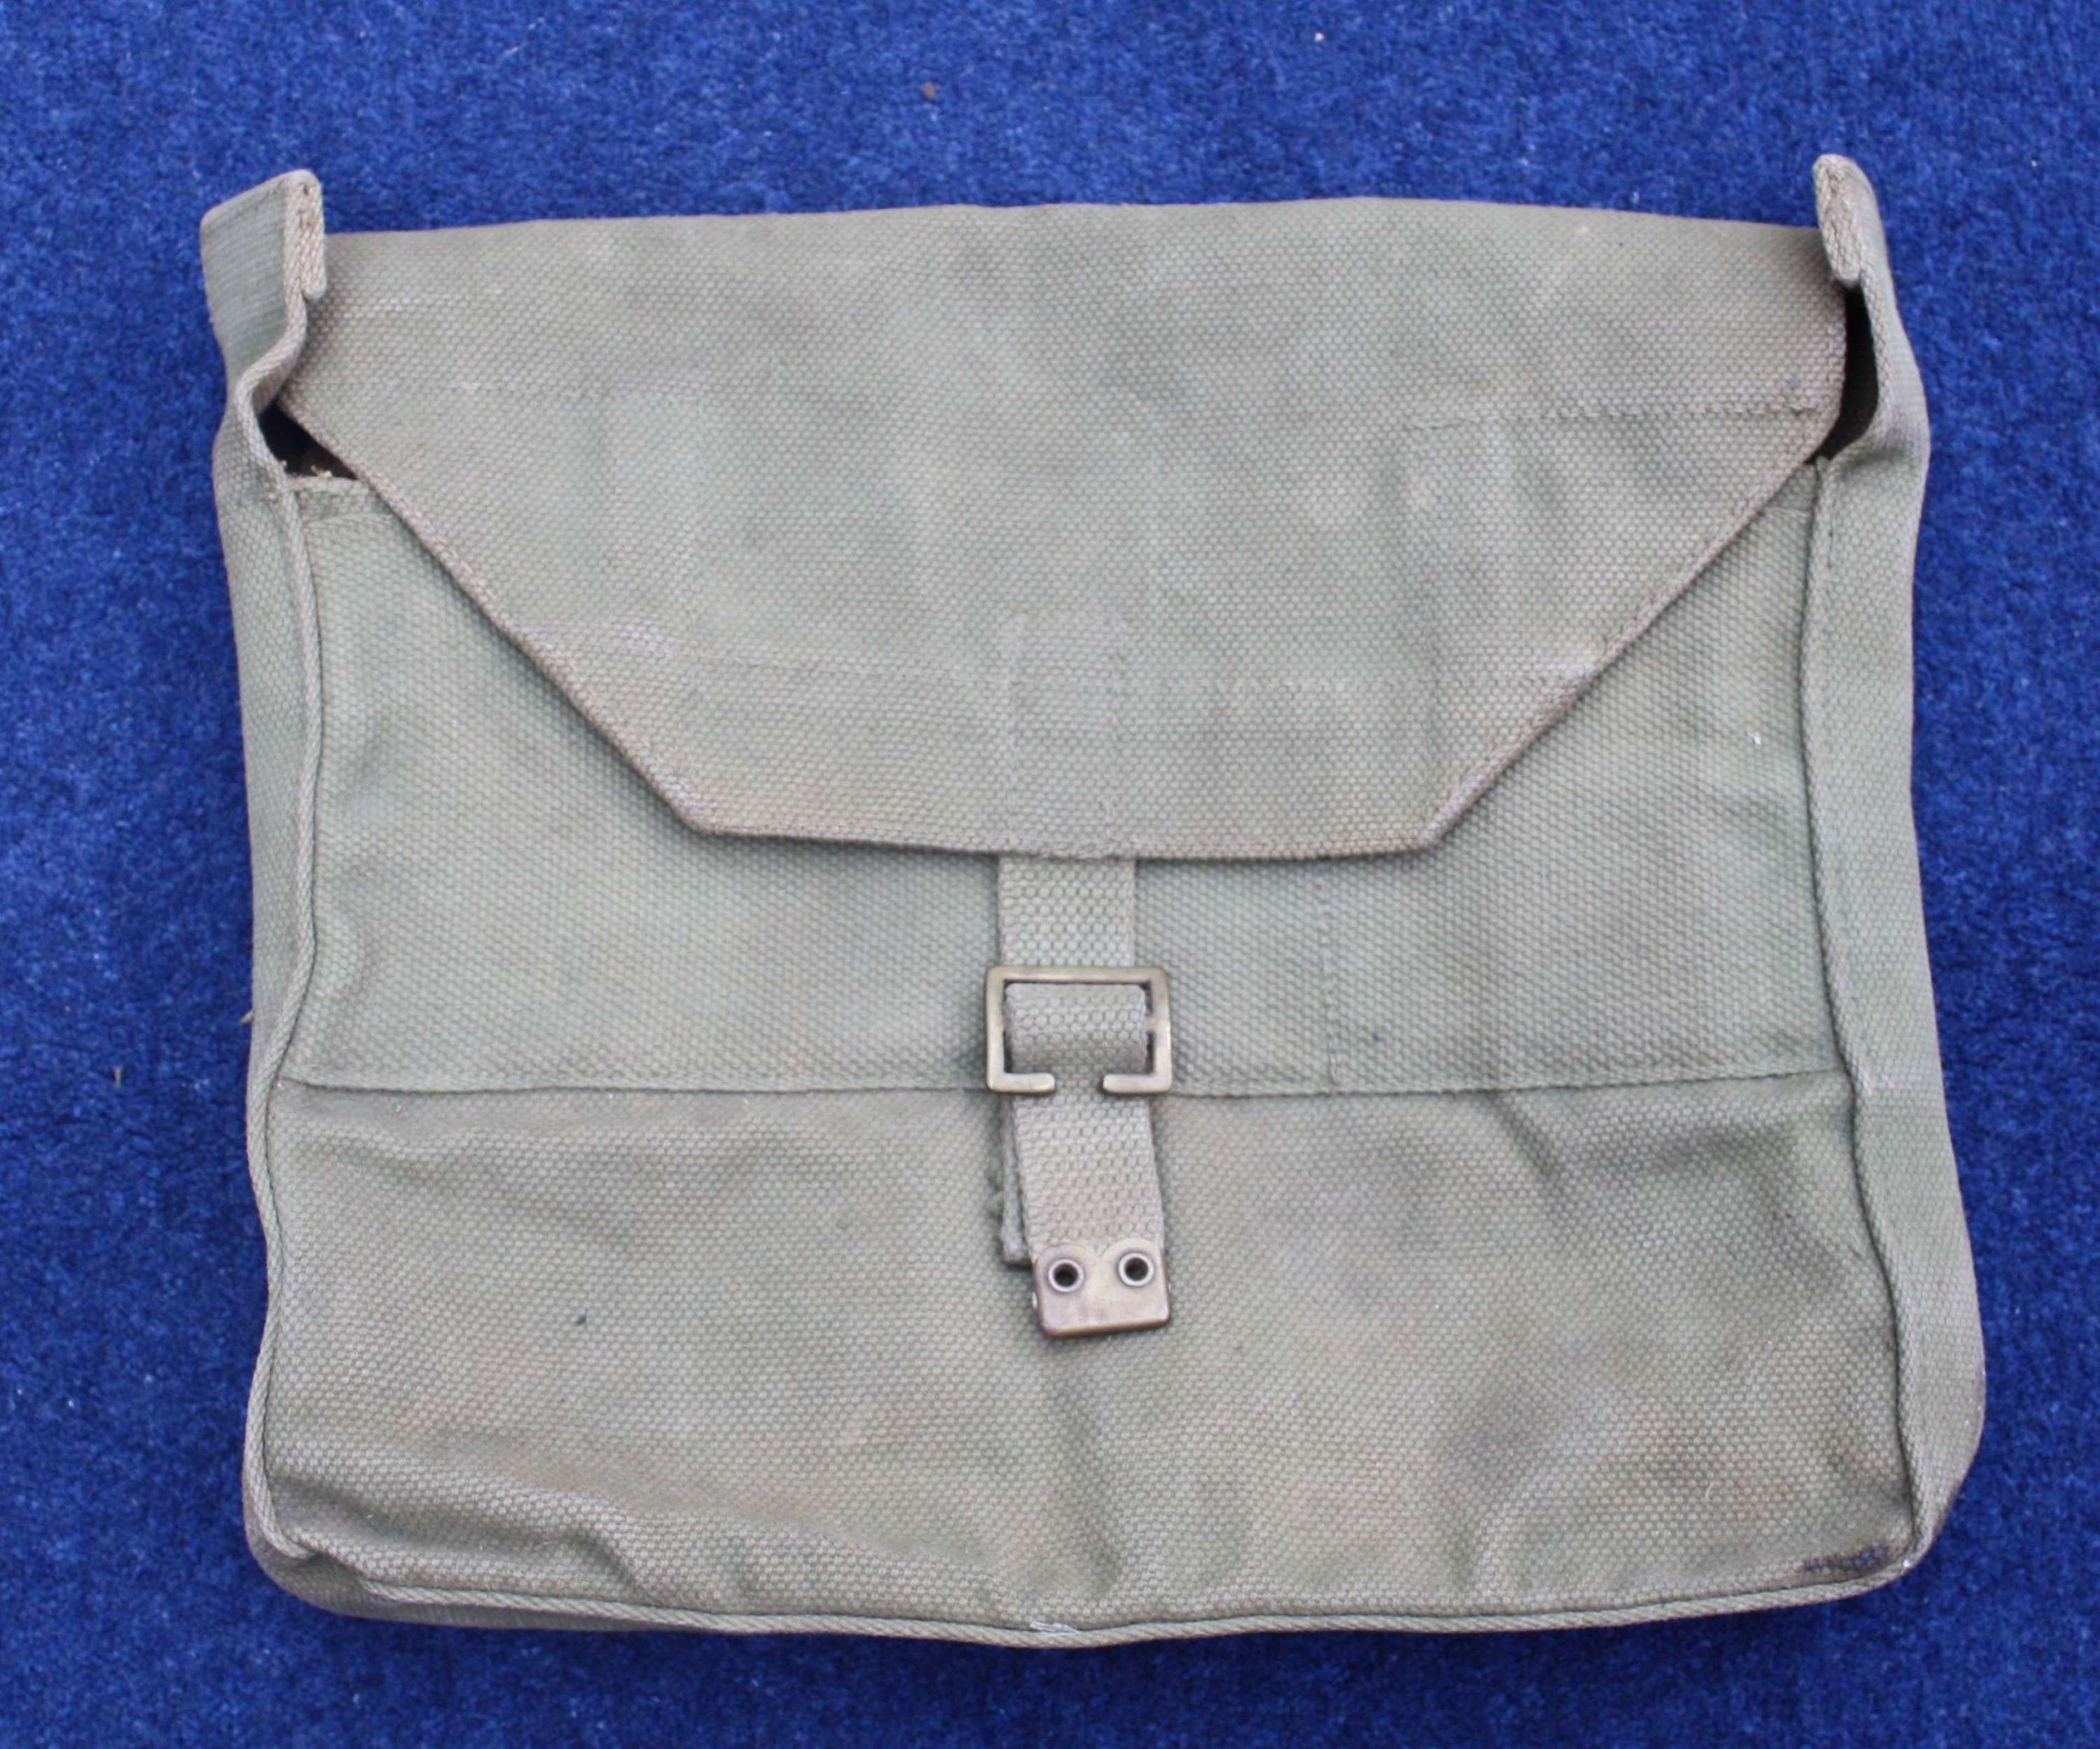 WW2 British Officers Haversack Valise dated 1941. Very Good Condition.